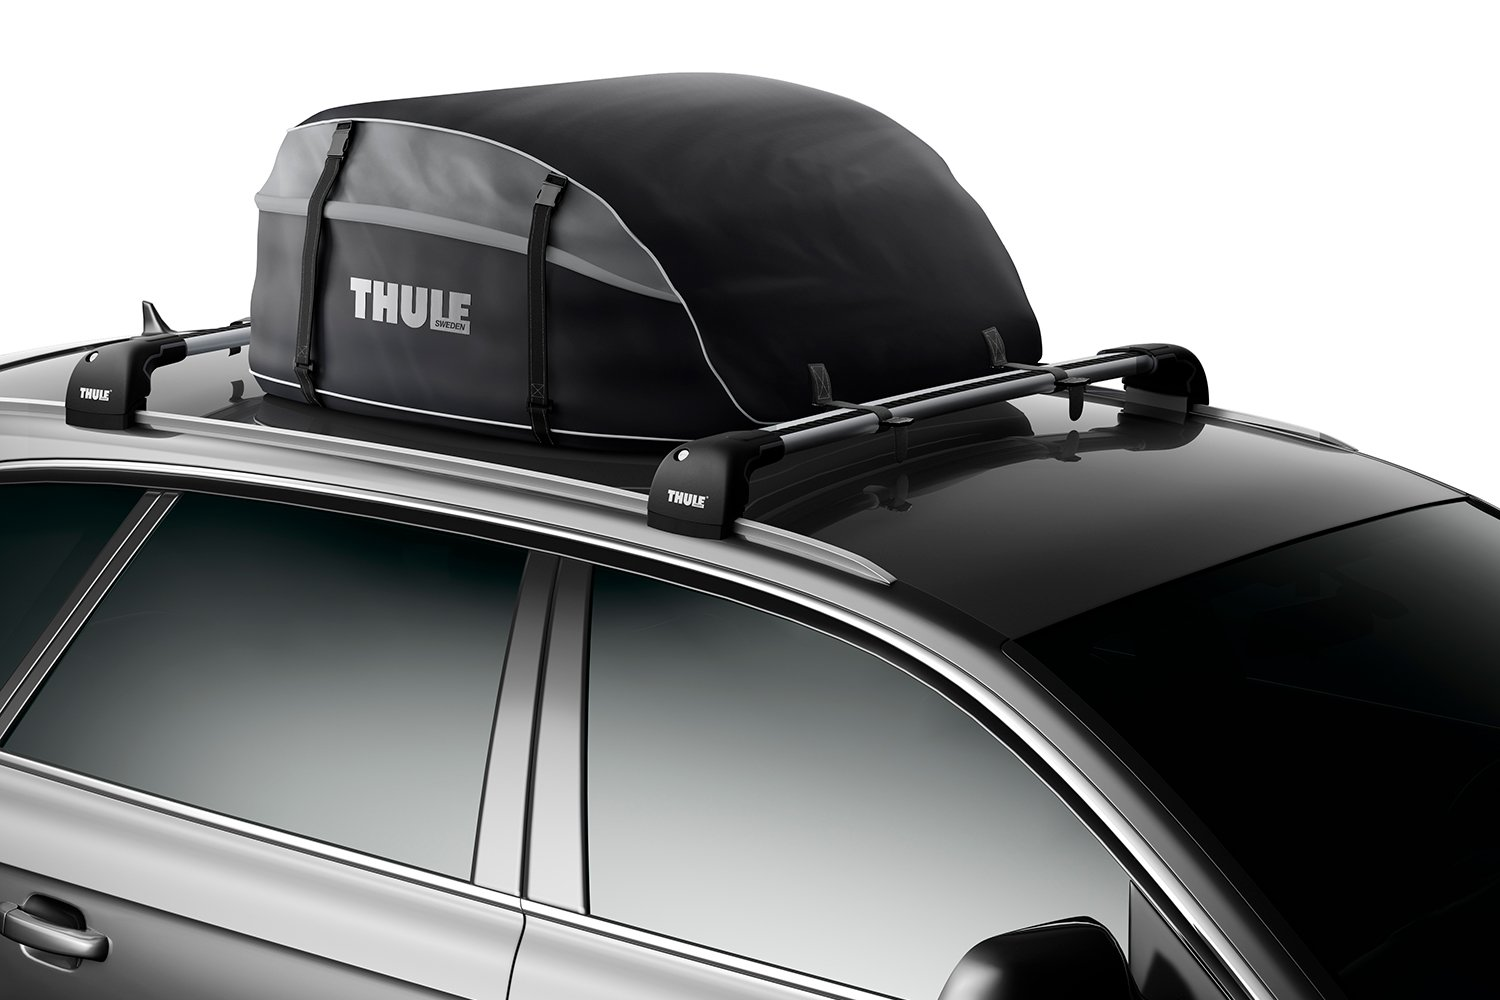 Thule Interstate Roof Cargo Bag - IPX3 896 Carrier